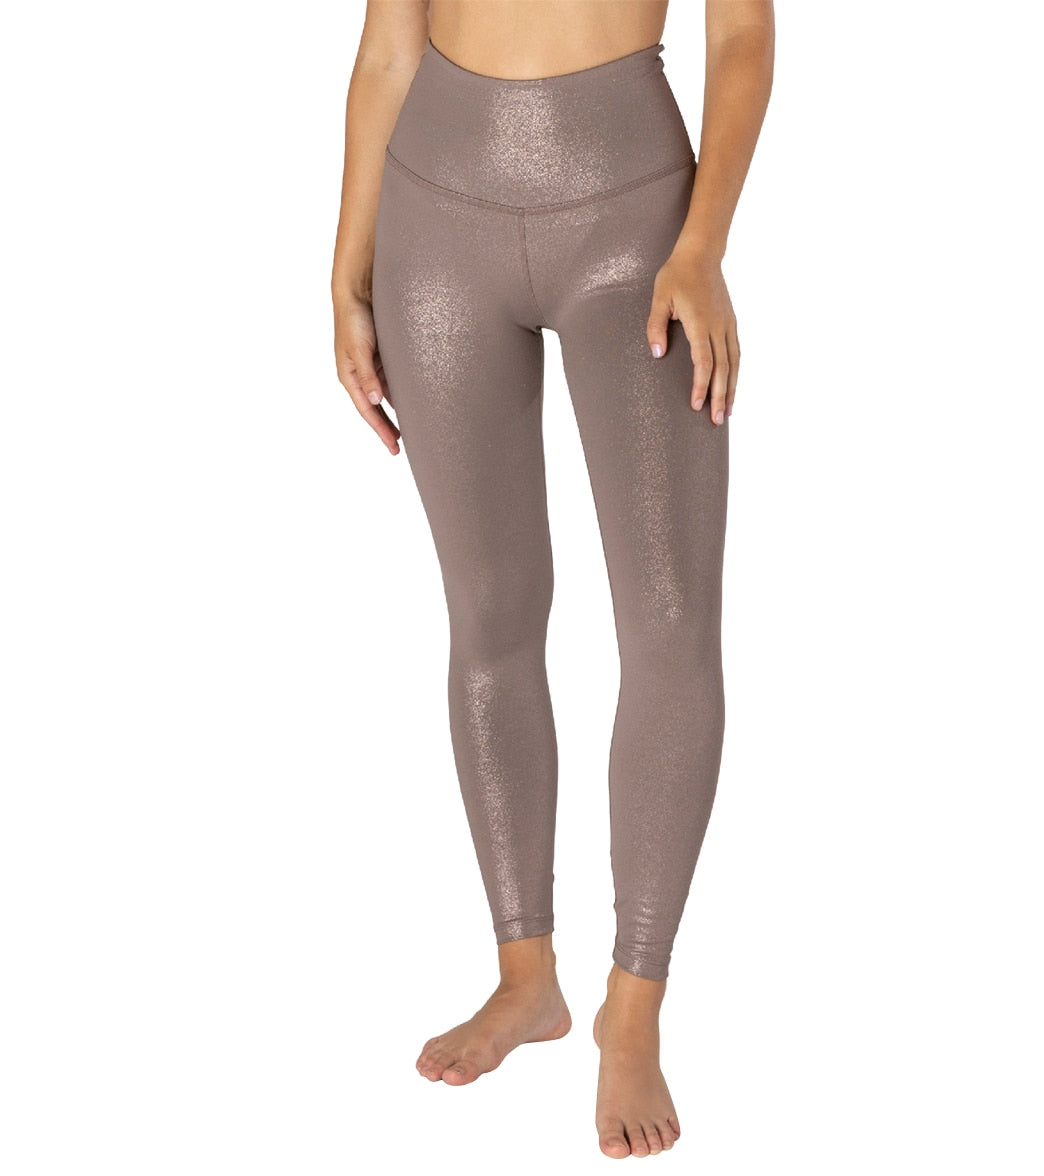 Make a statement at your next yoga session in the Beyond Yoga Twinkle High Waisted 7/8 Yoga Leggings. FeaturesTwinkle foil print No outside seams 5 waistband Midi length DetailsFabric: 82% Nylon, 18% SpandexColor: Black, PurpleStyle Features: Foil PrintFit: TightRise: HighAdjustable: NoLength: Above ankleCountry of Origin: Made in the USA. About Beyond Yoga: Beyond Yoga is a luxury lifestyle brand founded by Jodi Guber. The brand operates at the fulcrum of fashion and functionality, combining th